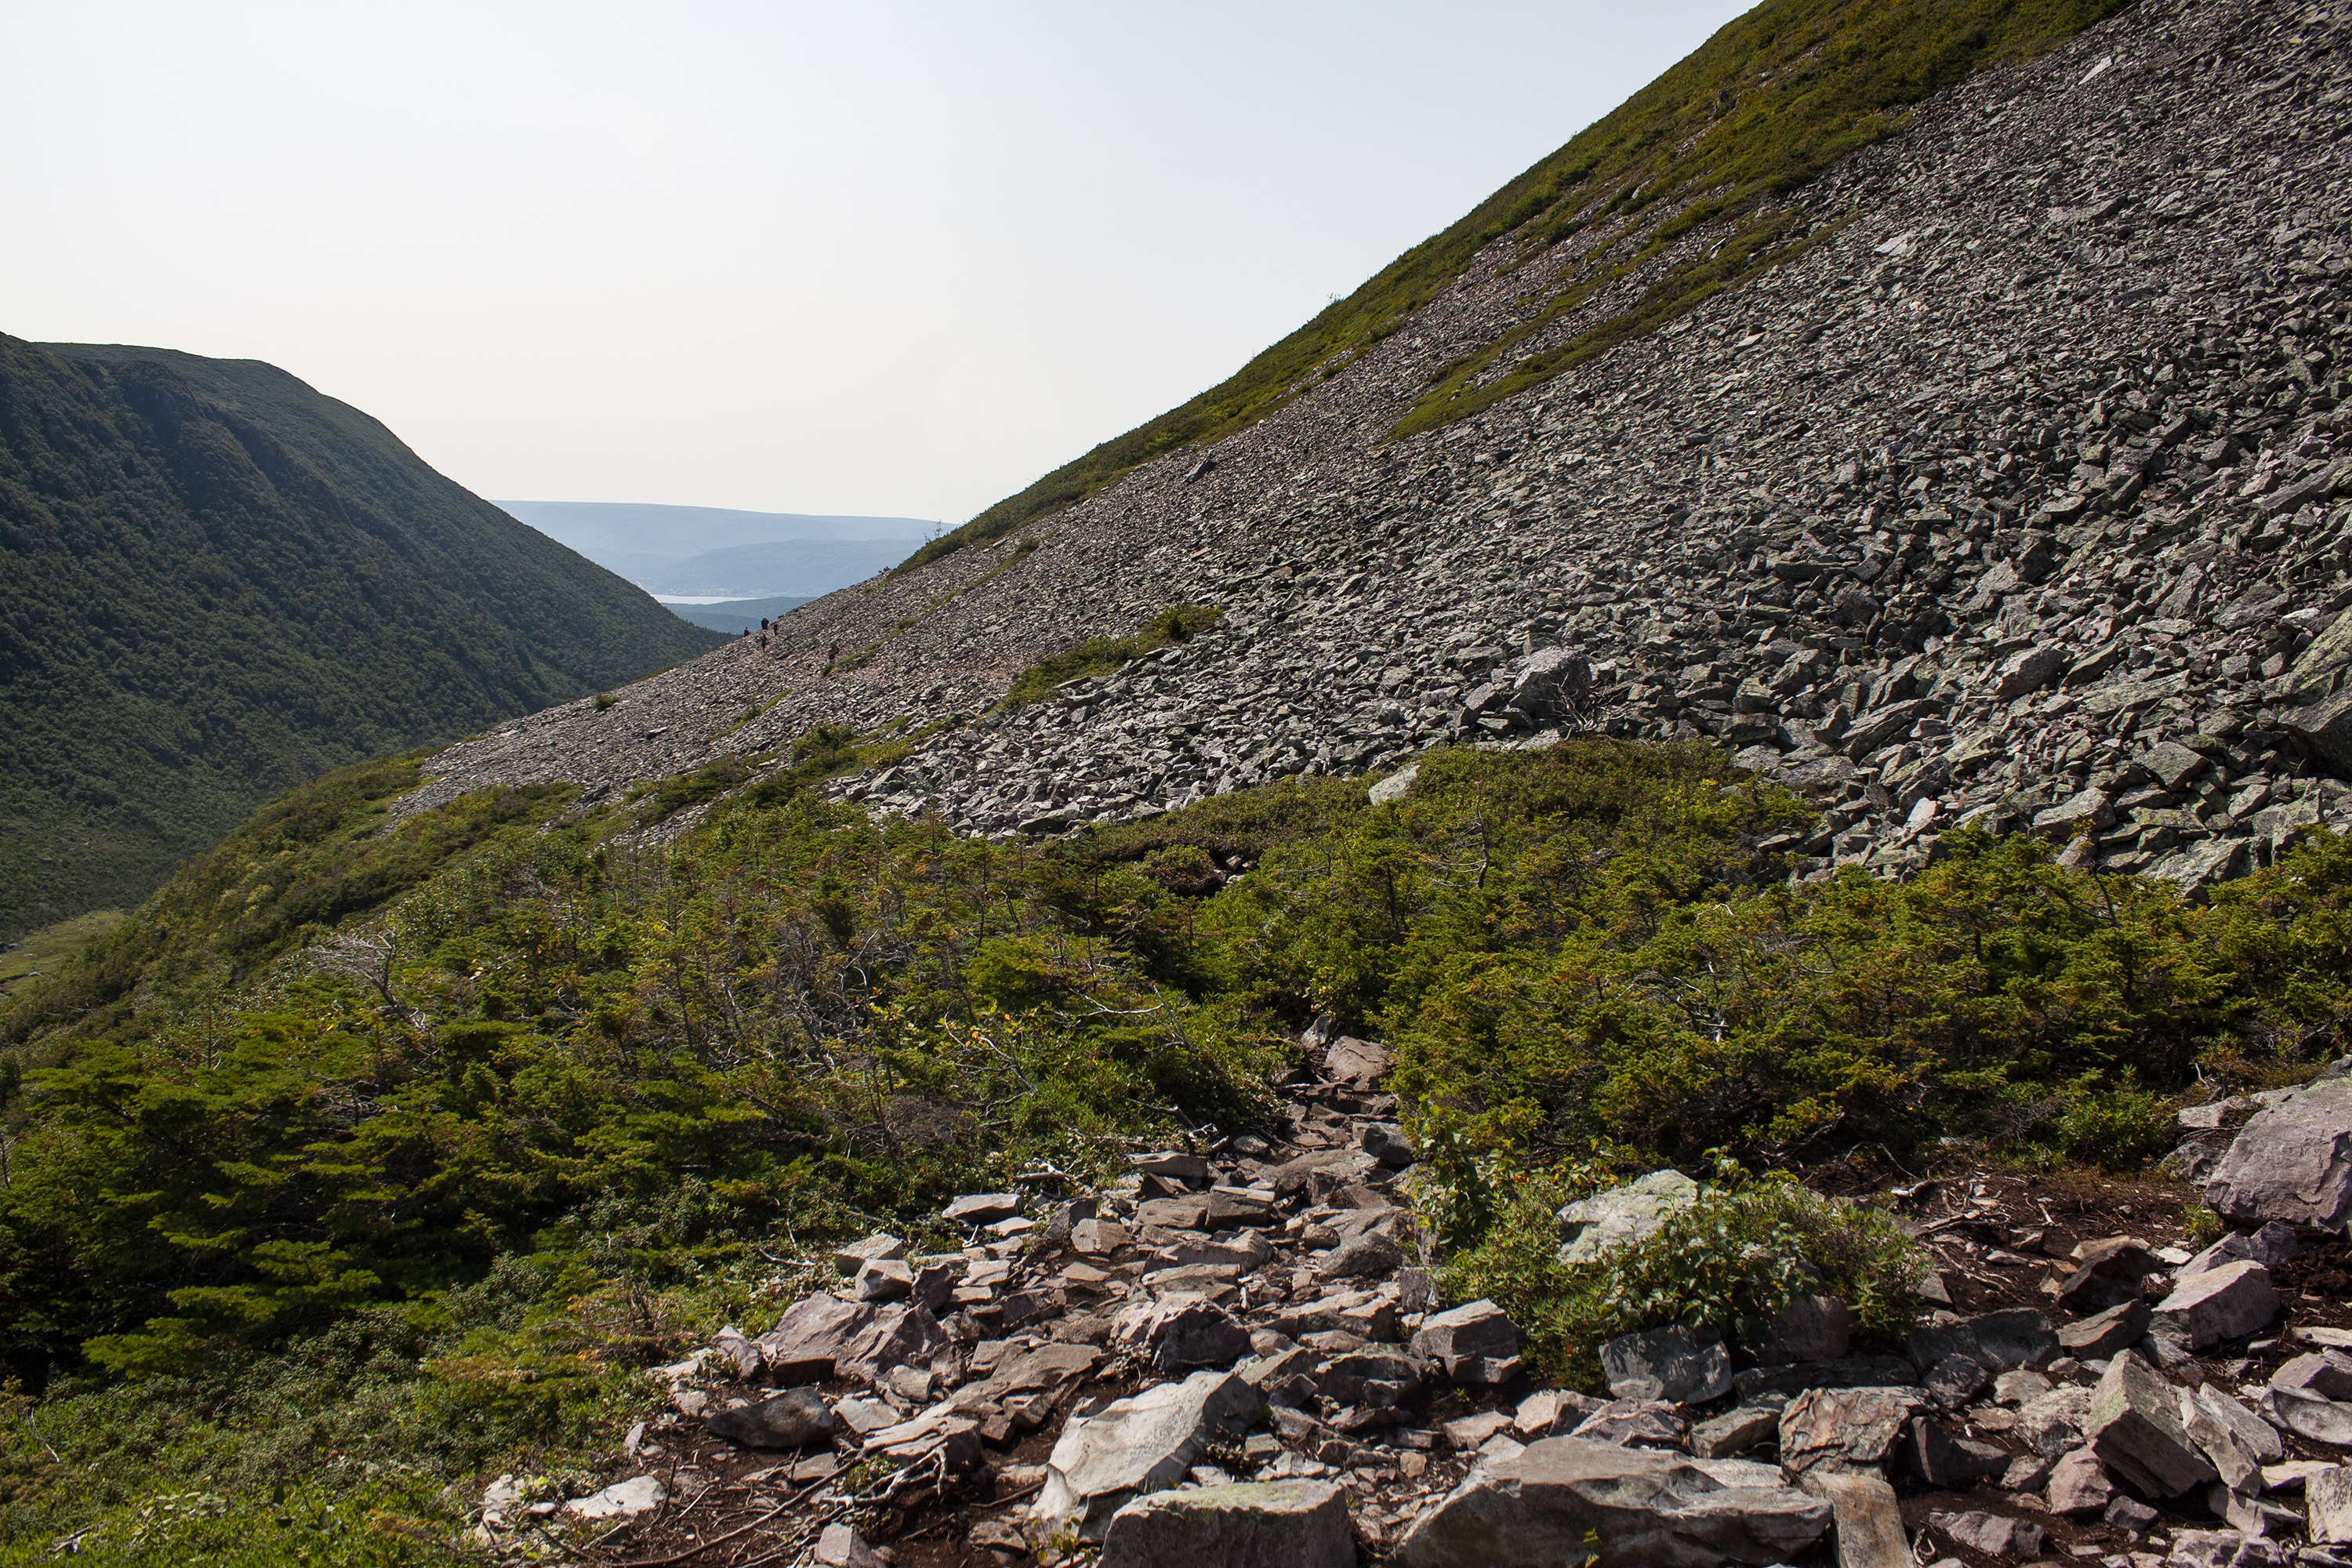 The eastern portion of the trail at Gros Morne Mountain, pictured on Aug. 31, 2017. (Steve Silva)